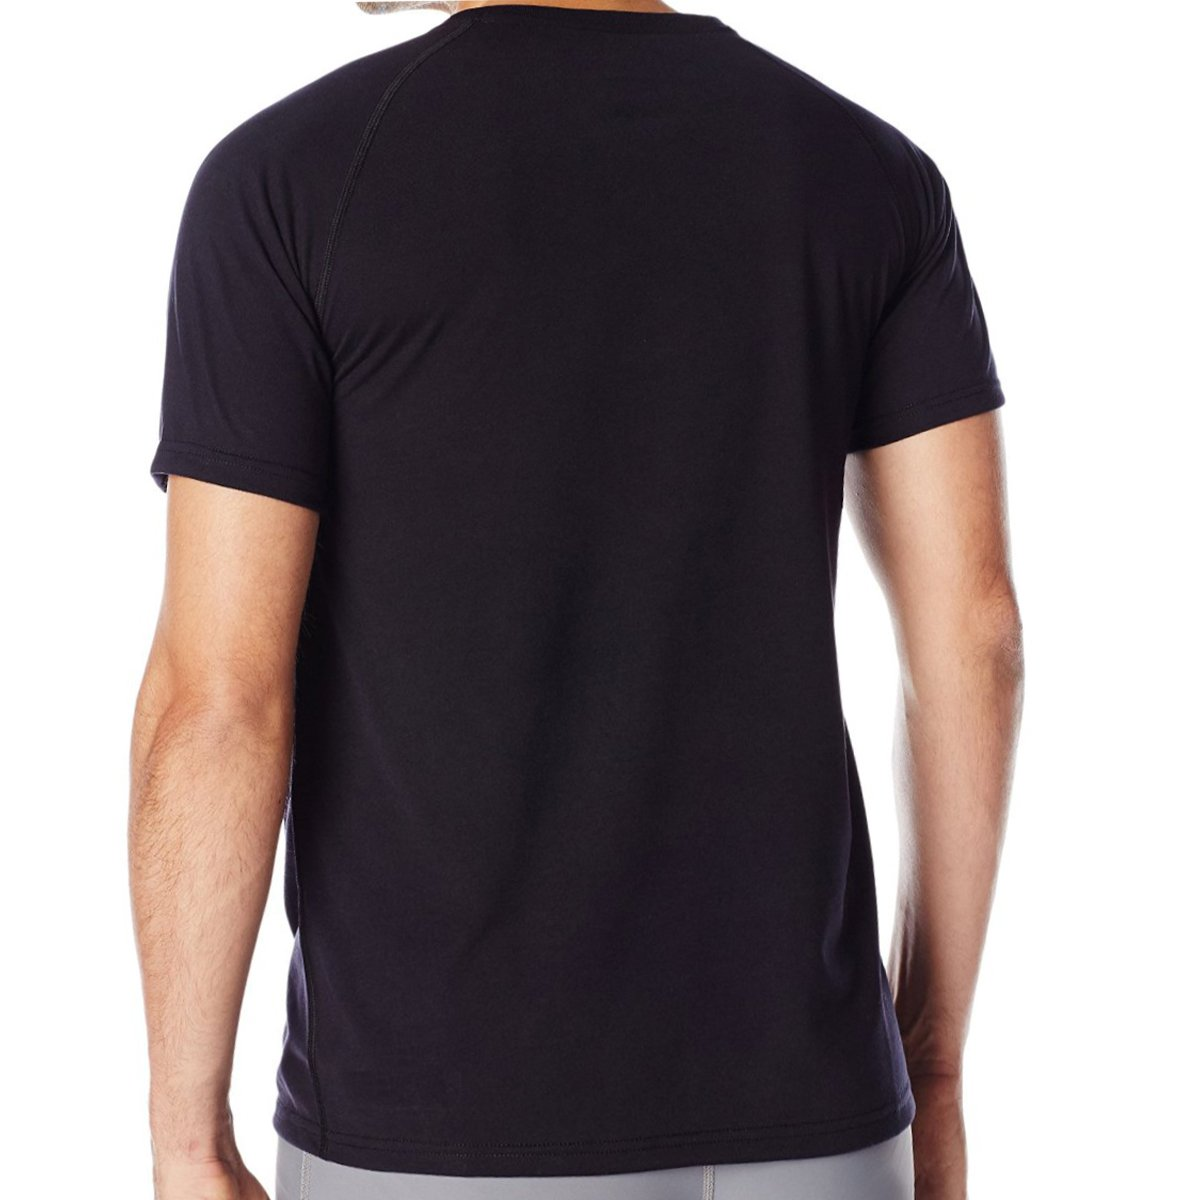 This Style Mens You Just Got Served Volleyball Cool Running T Shirts